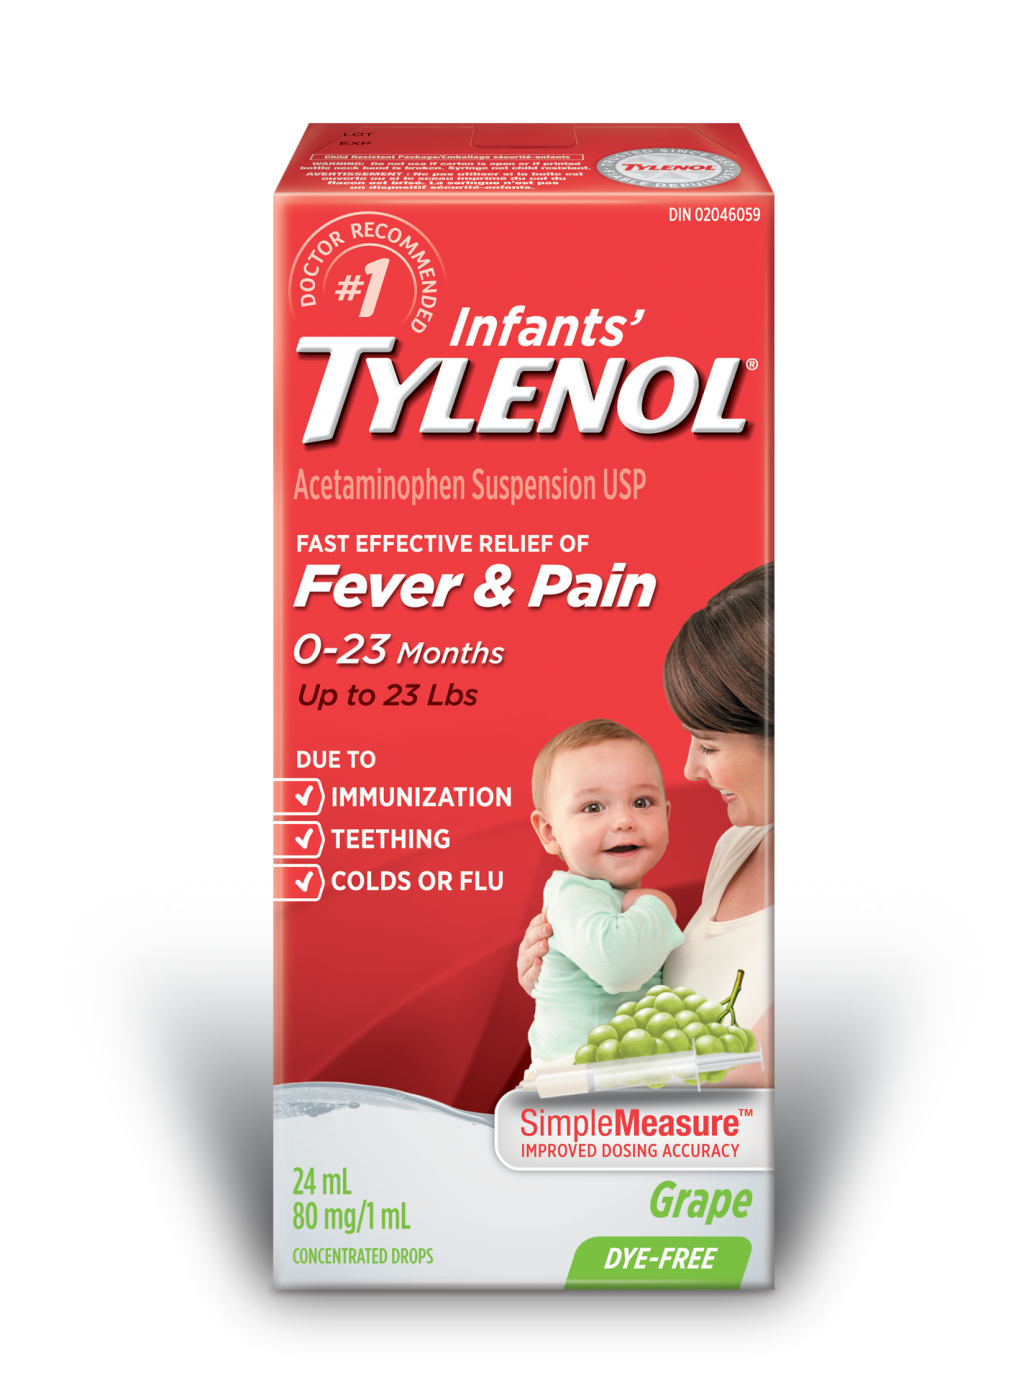 how to buy tylenol 1 in canada